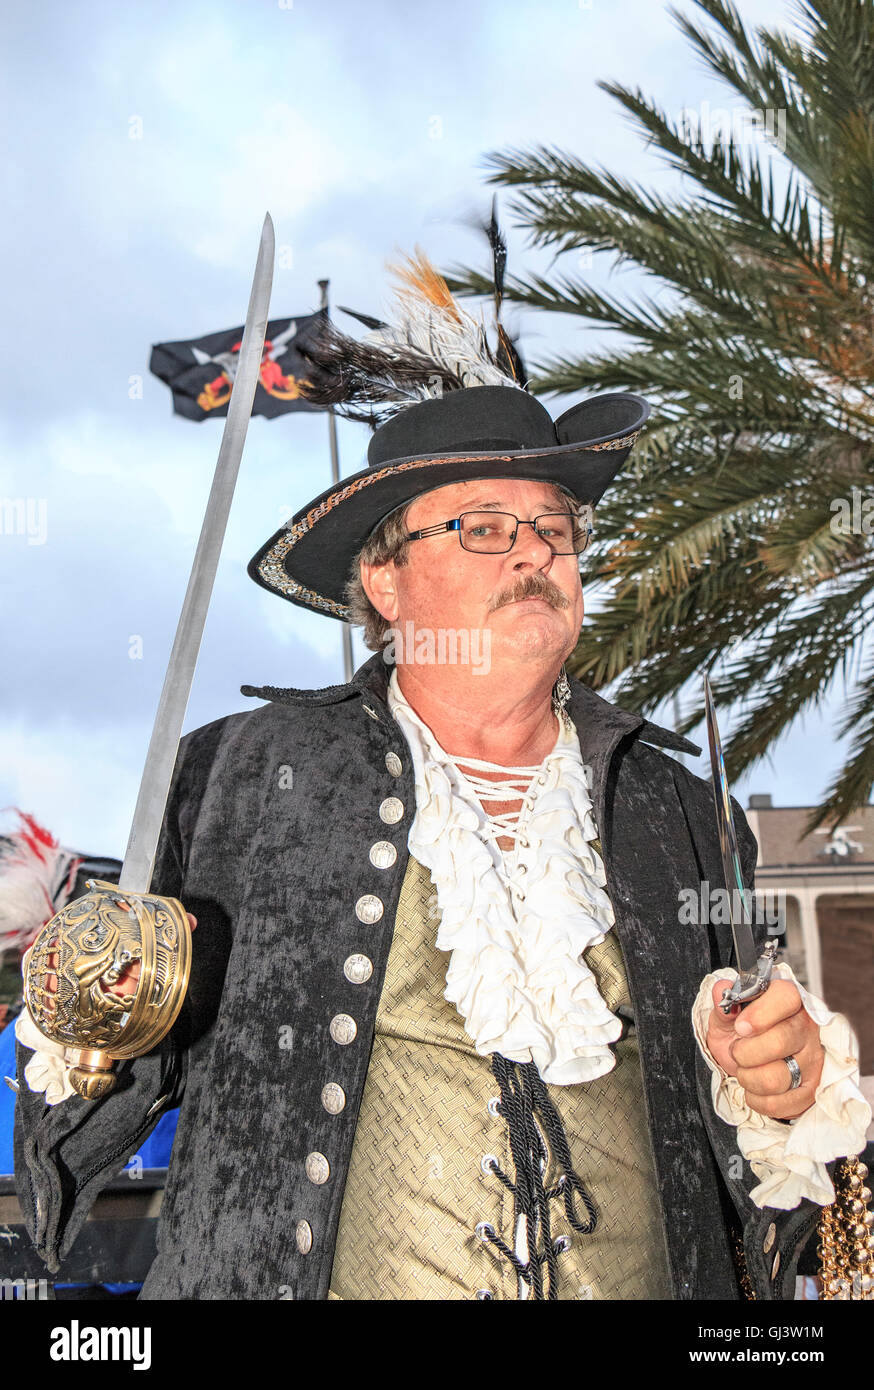 Contraband Days in Lake Charles, Louisiana, celebrating the days of pirate Jean Lafitte. - Stock Image